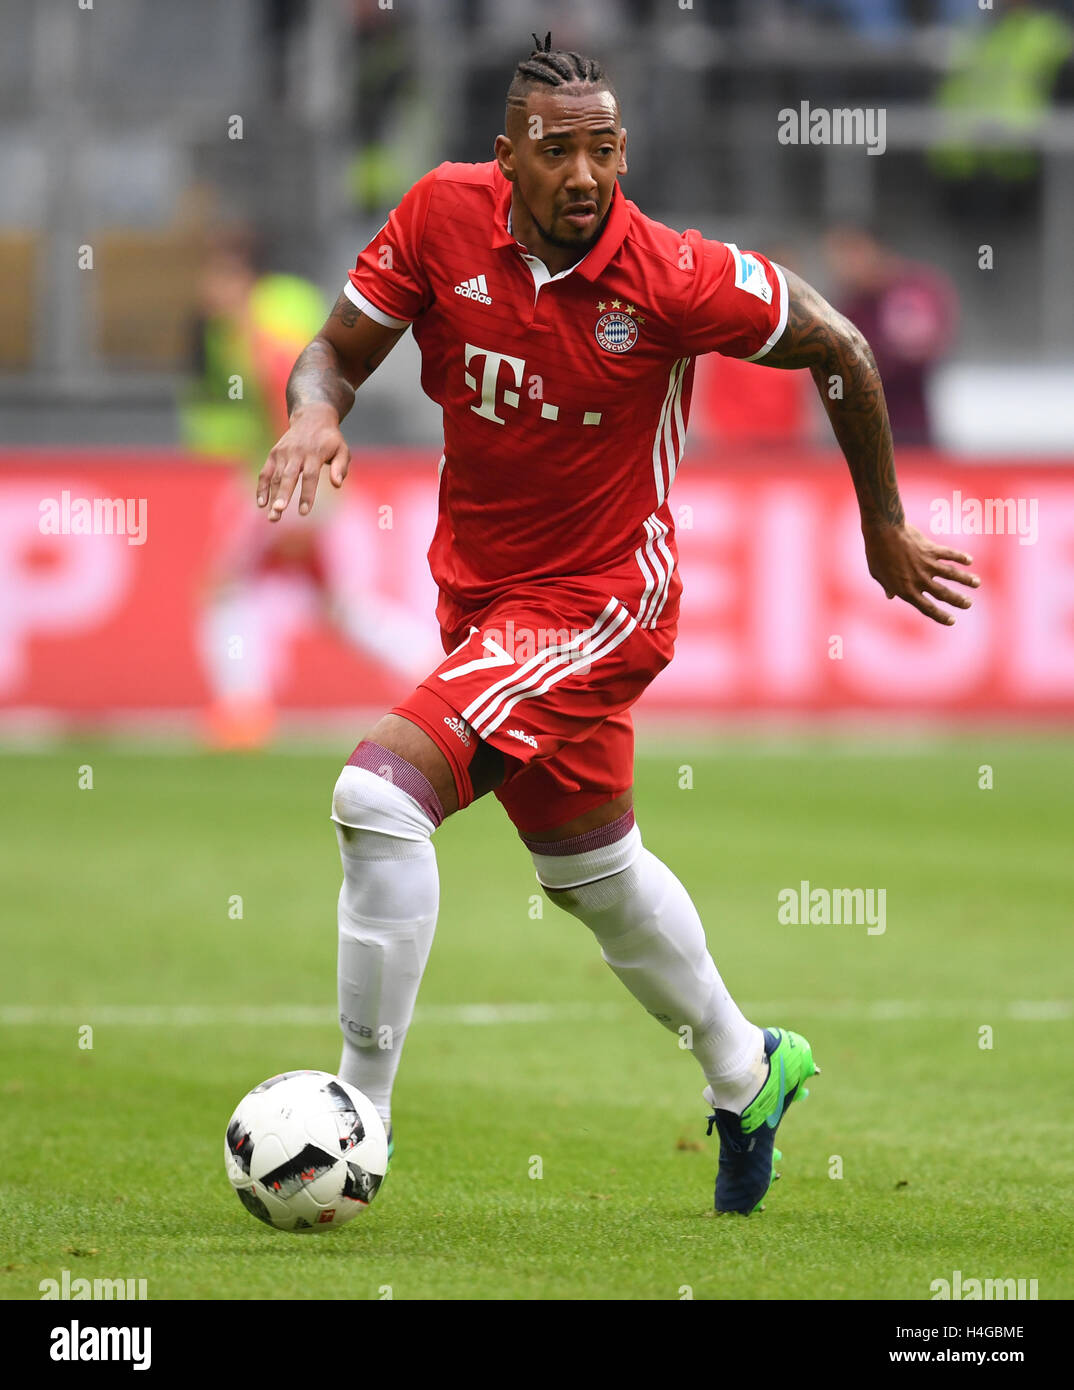 Munich s Jerome Boateng in action during the match between